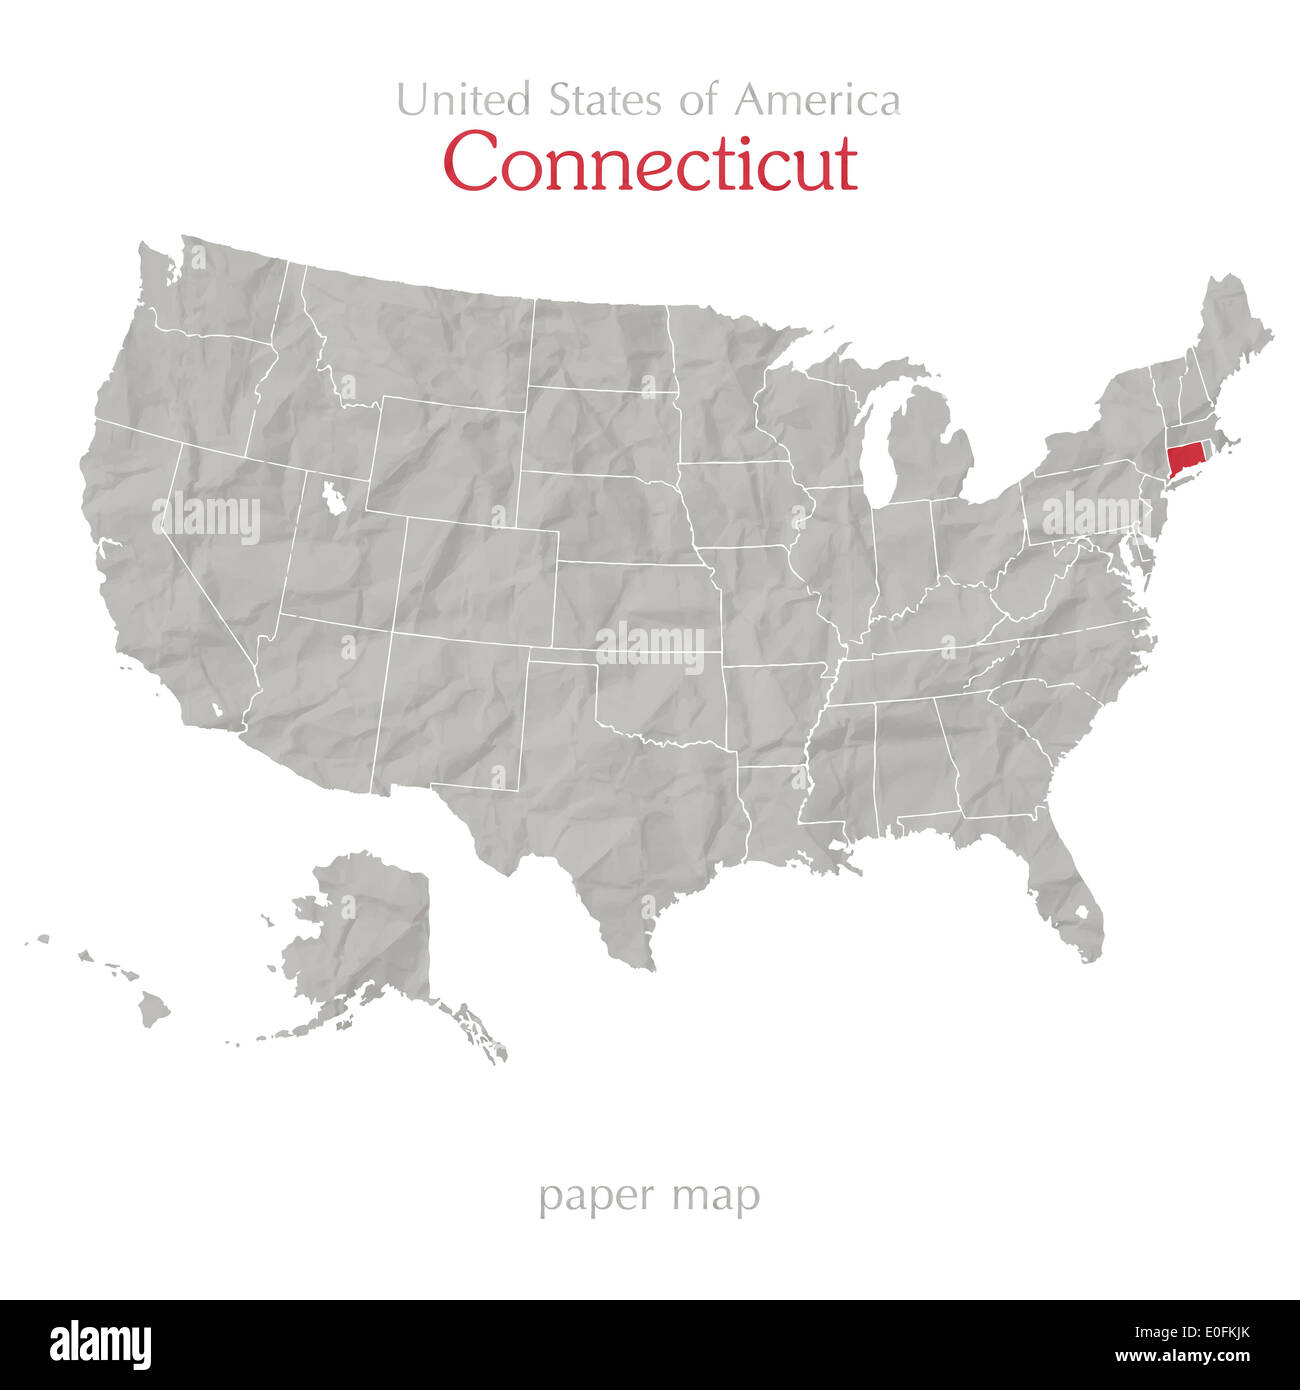 connecticut in us map United States Of America Map And Connecticut State Territory connecticut in us map